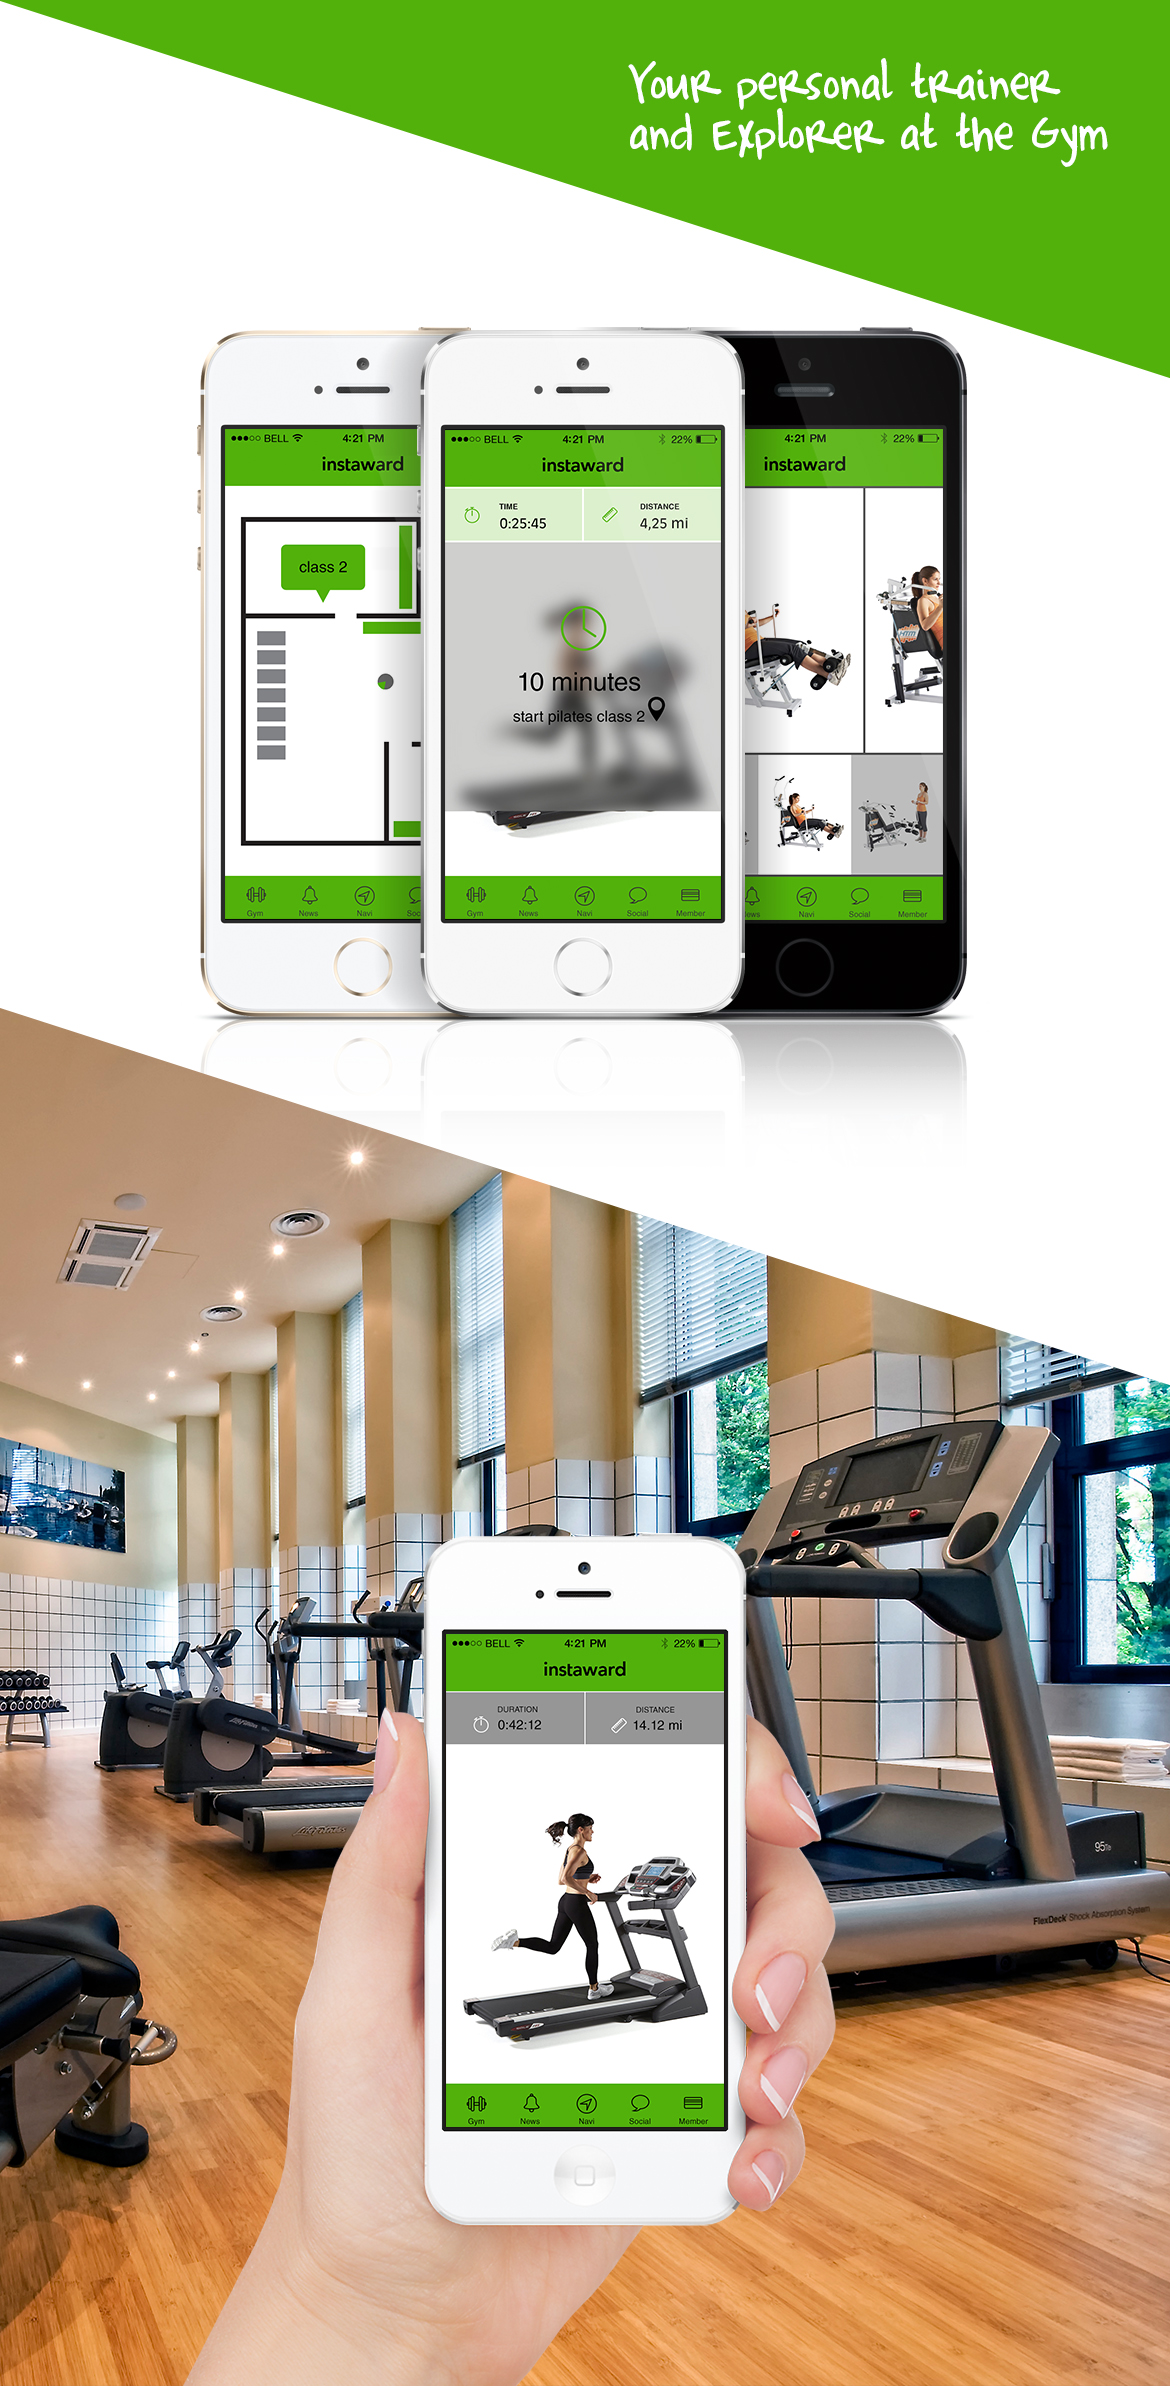 InstawardGymLong Fitness Centre, Instaward Communication Platform